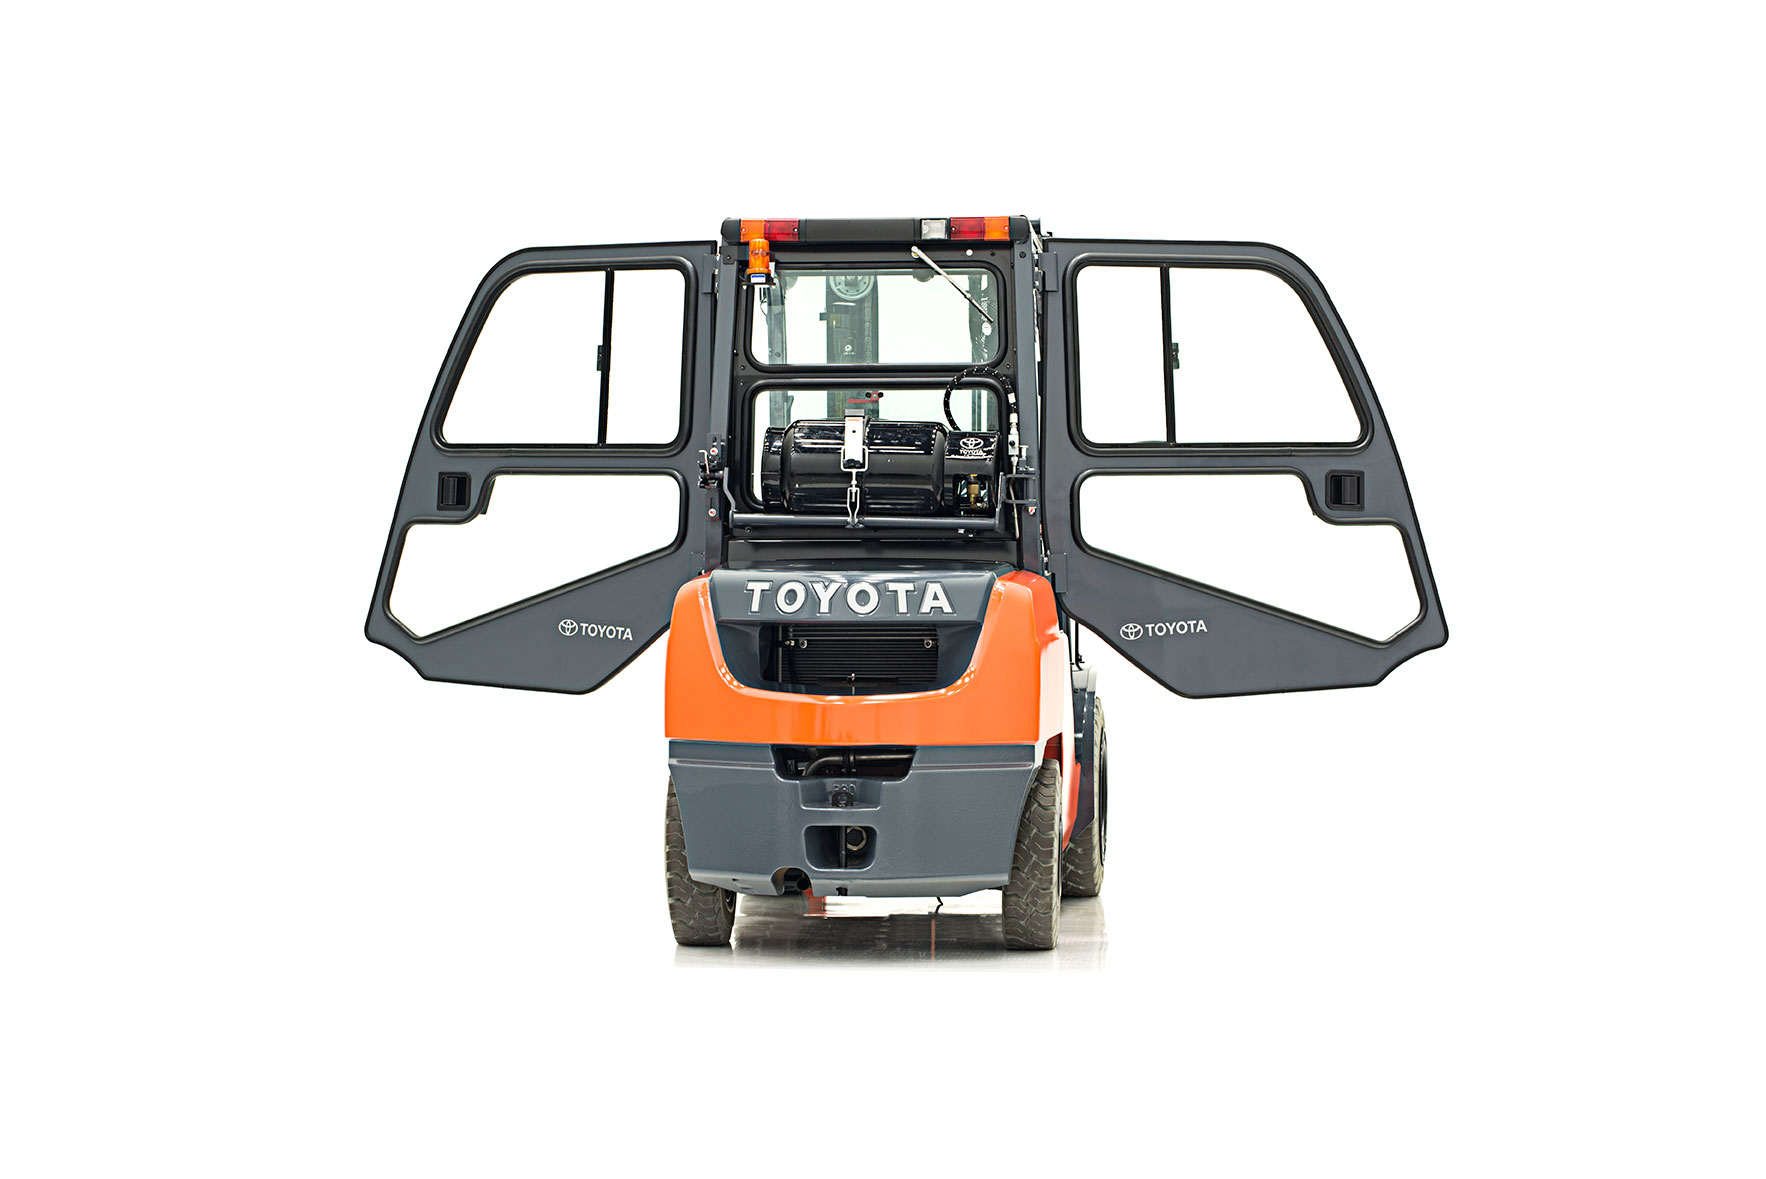 Toyota Forklift Lease Options Toyota Forklifts